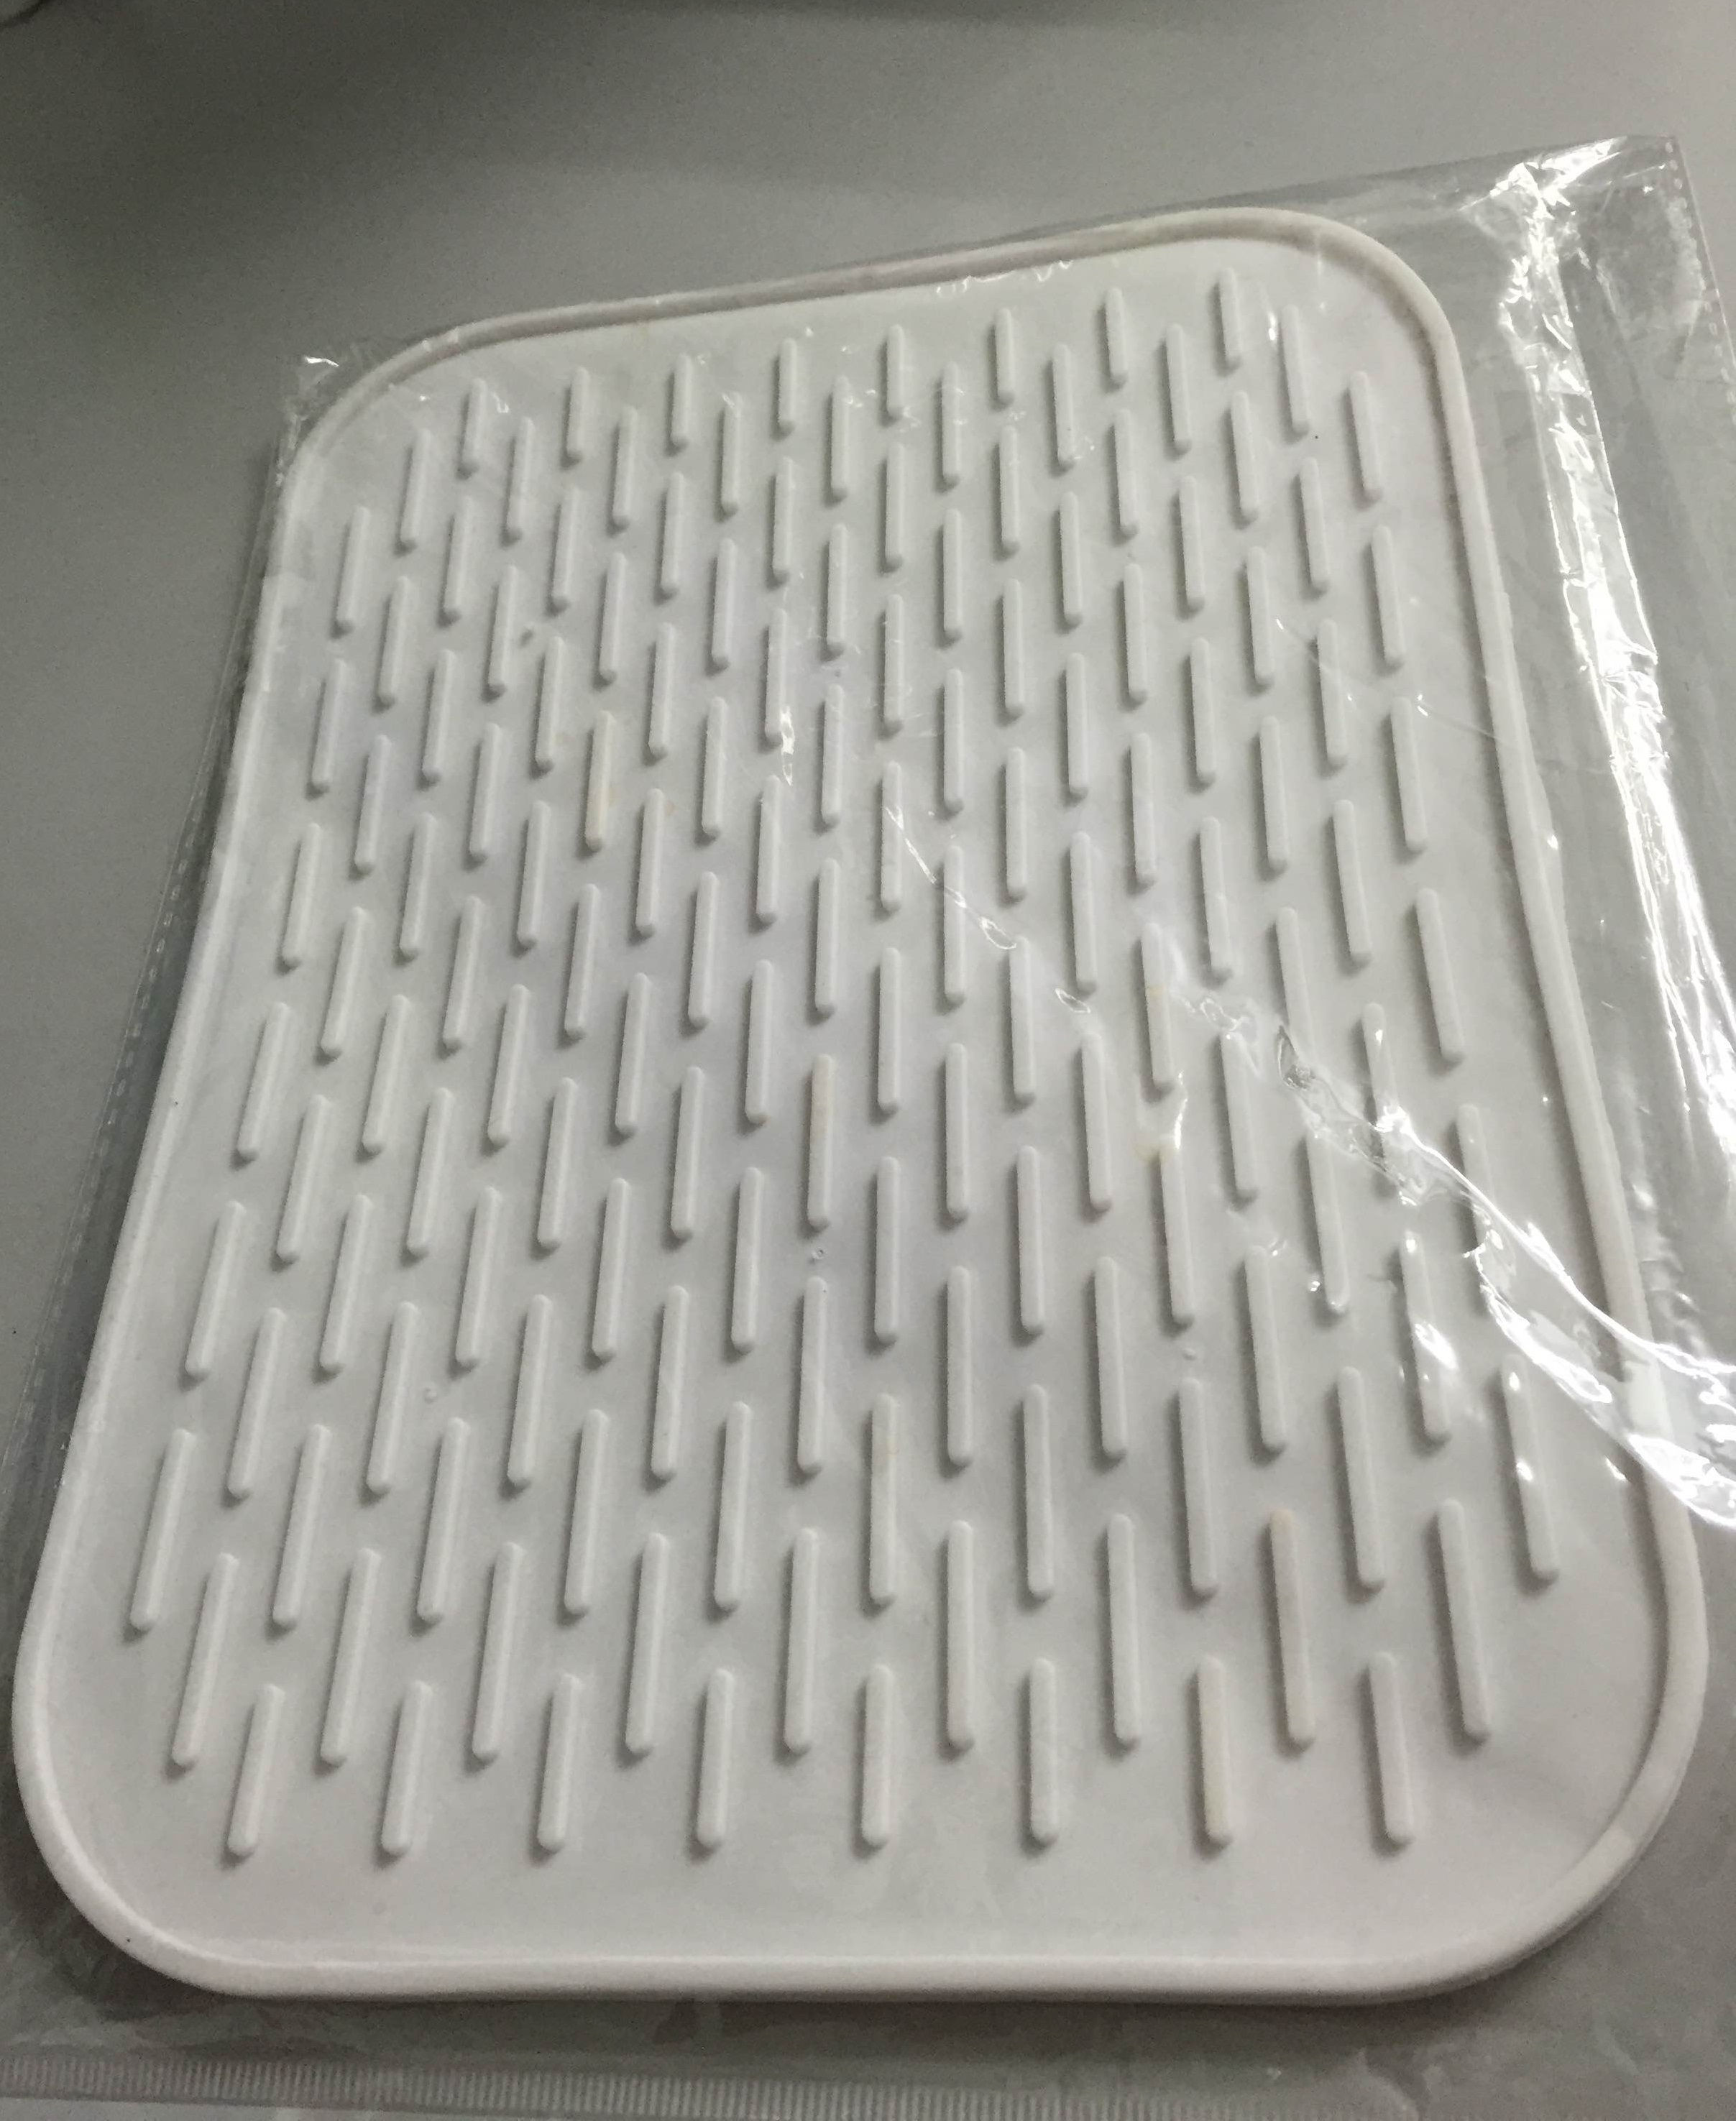 resistant mats cooking mat biscu picture of s sheets silicone pyramid baking p heat for professional